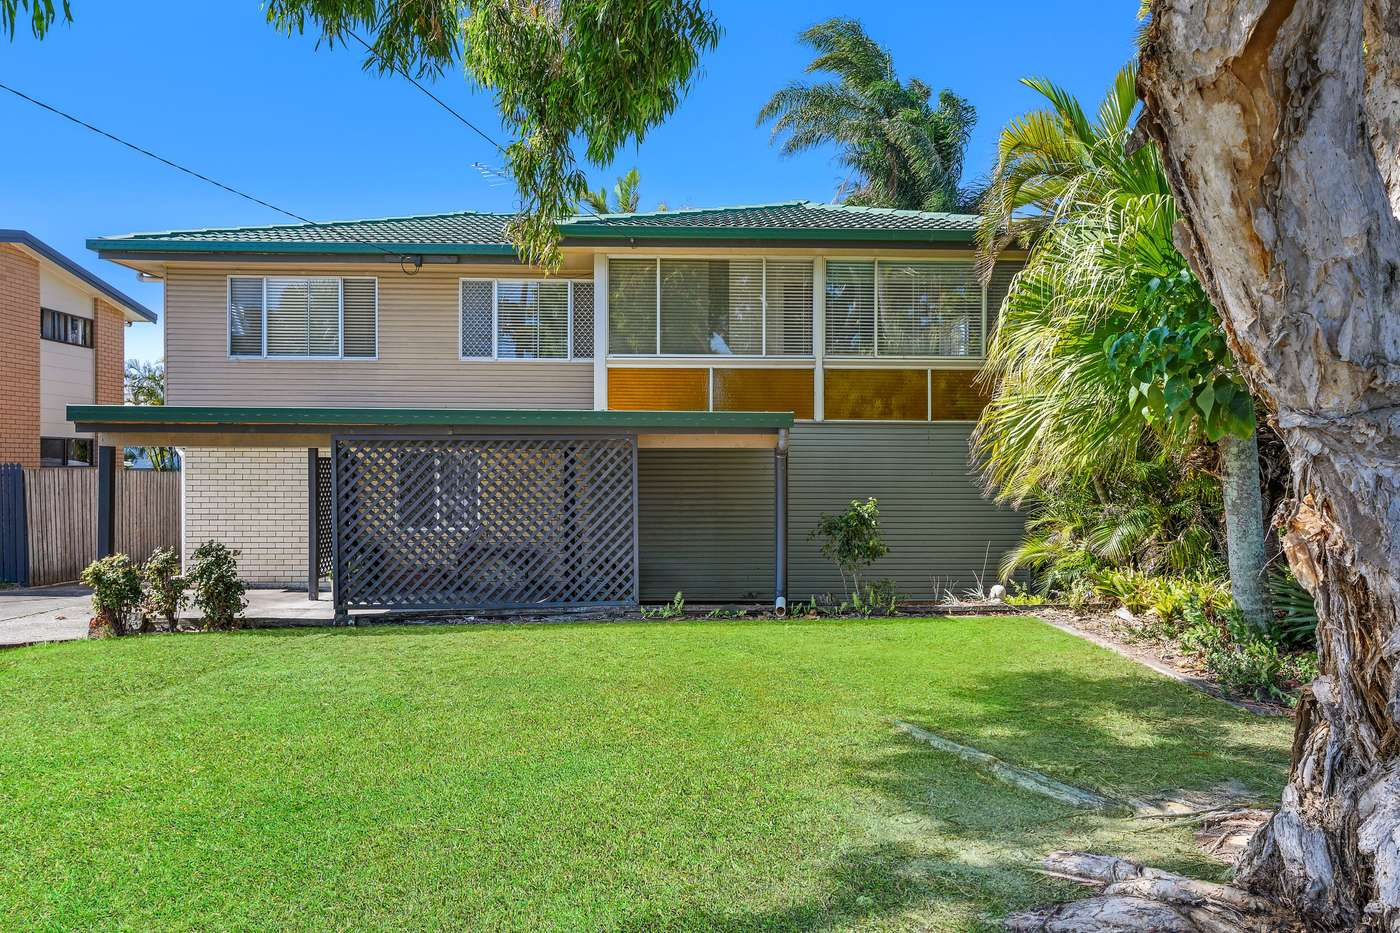 Main view of Homely house listing, 14 Napier Street, Kippa-ring, QLD 4021